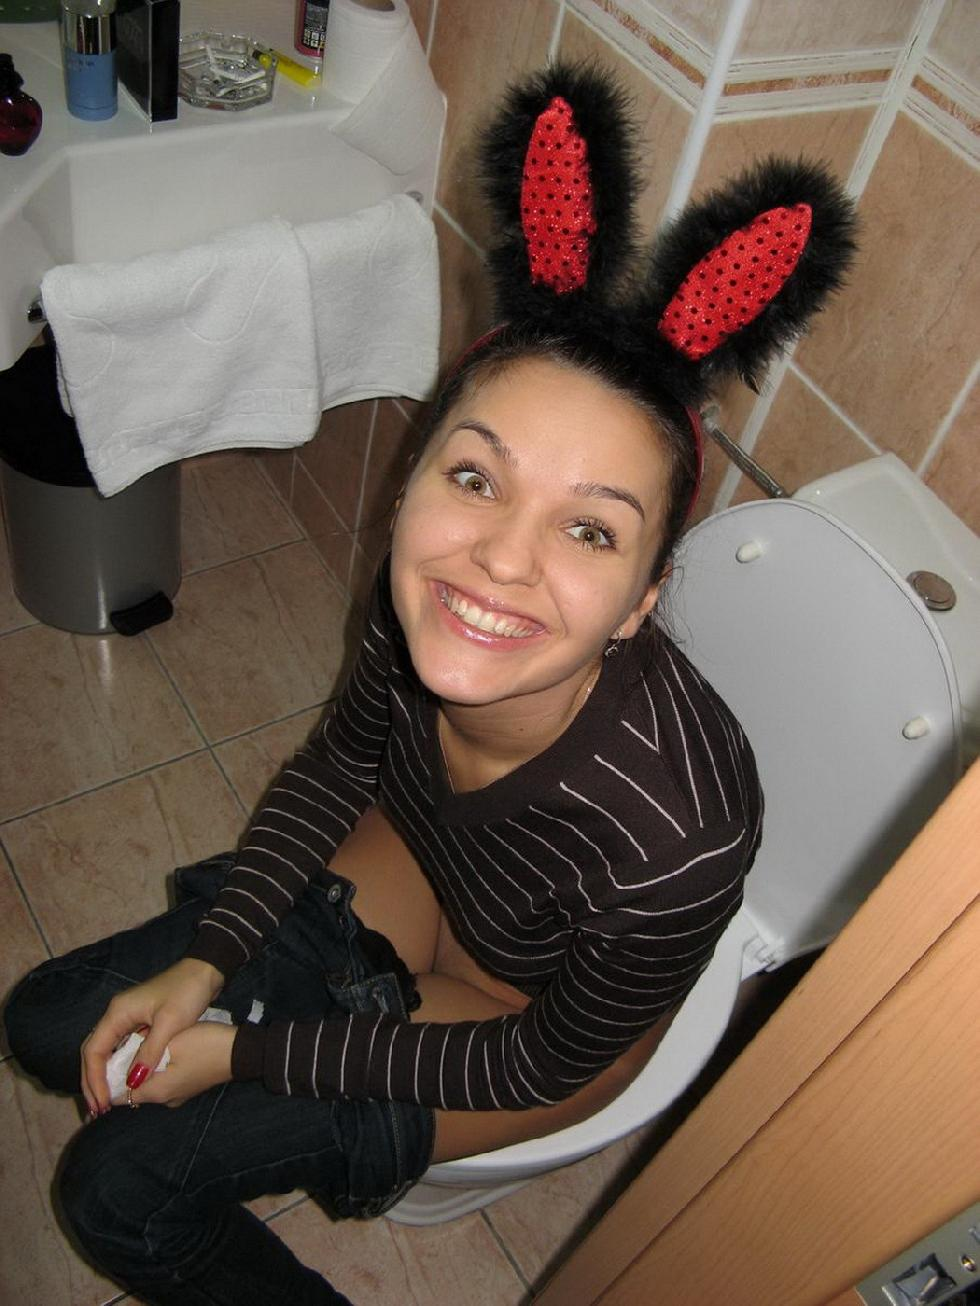 Gorgeous bunny in hotel room - Nancy - 2